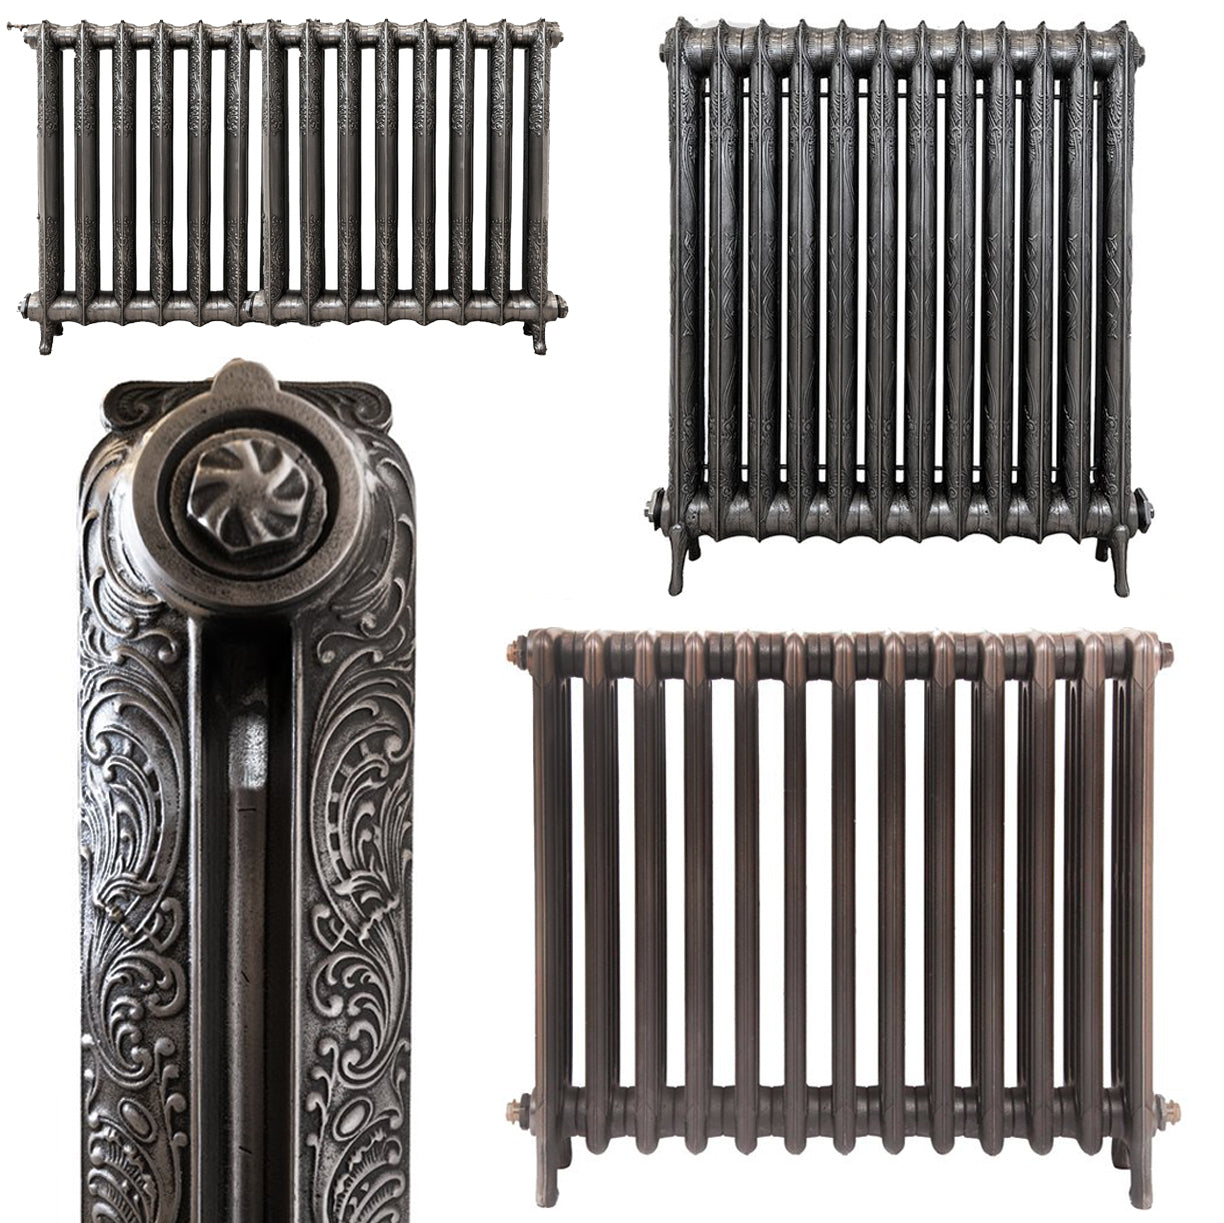 Original Radiators Buying Guide